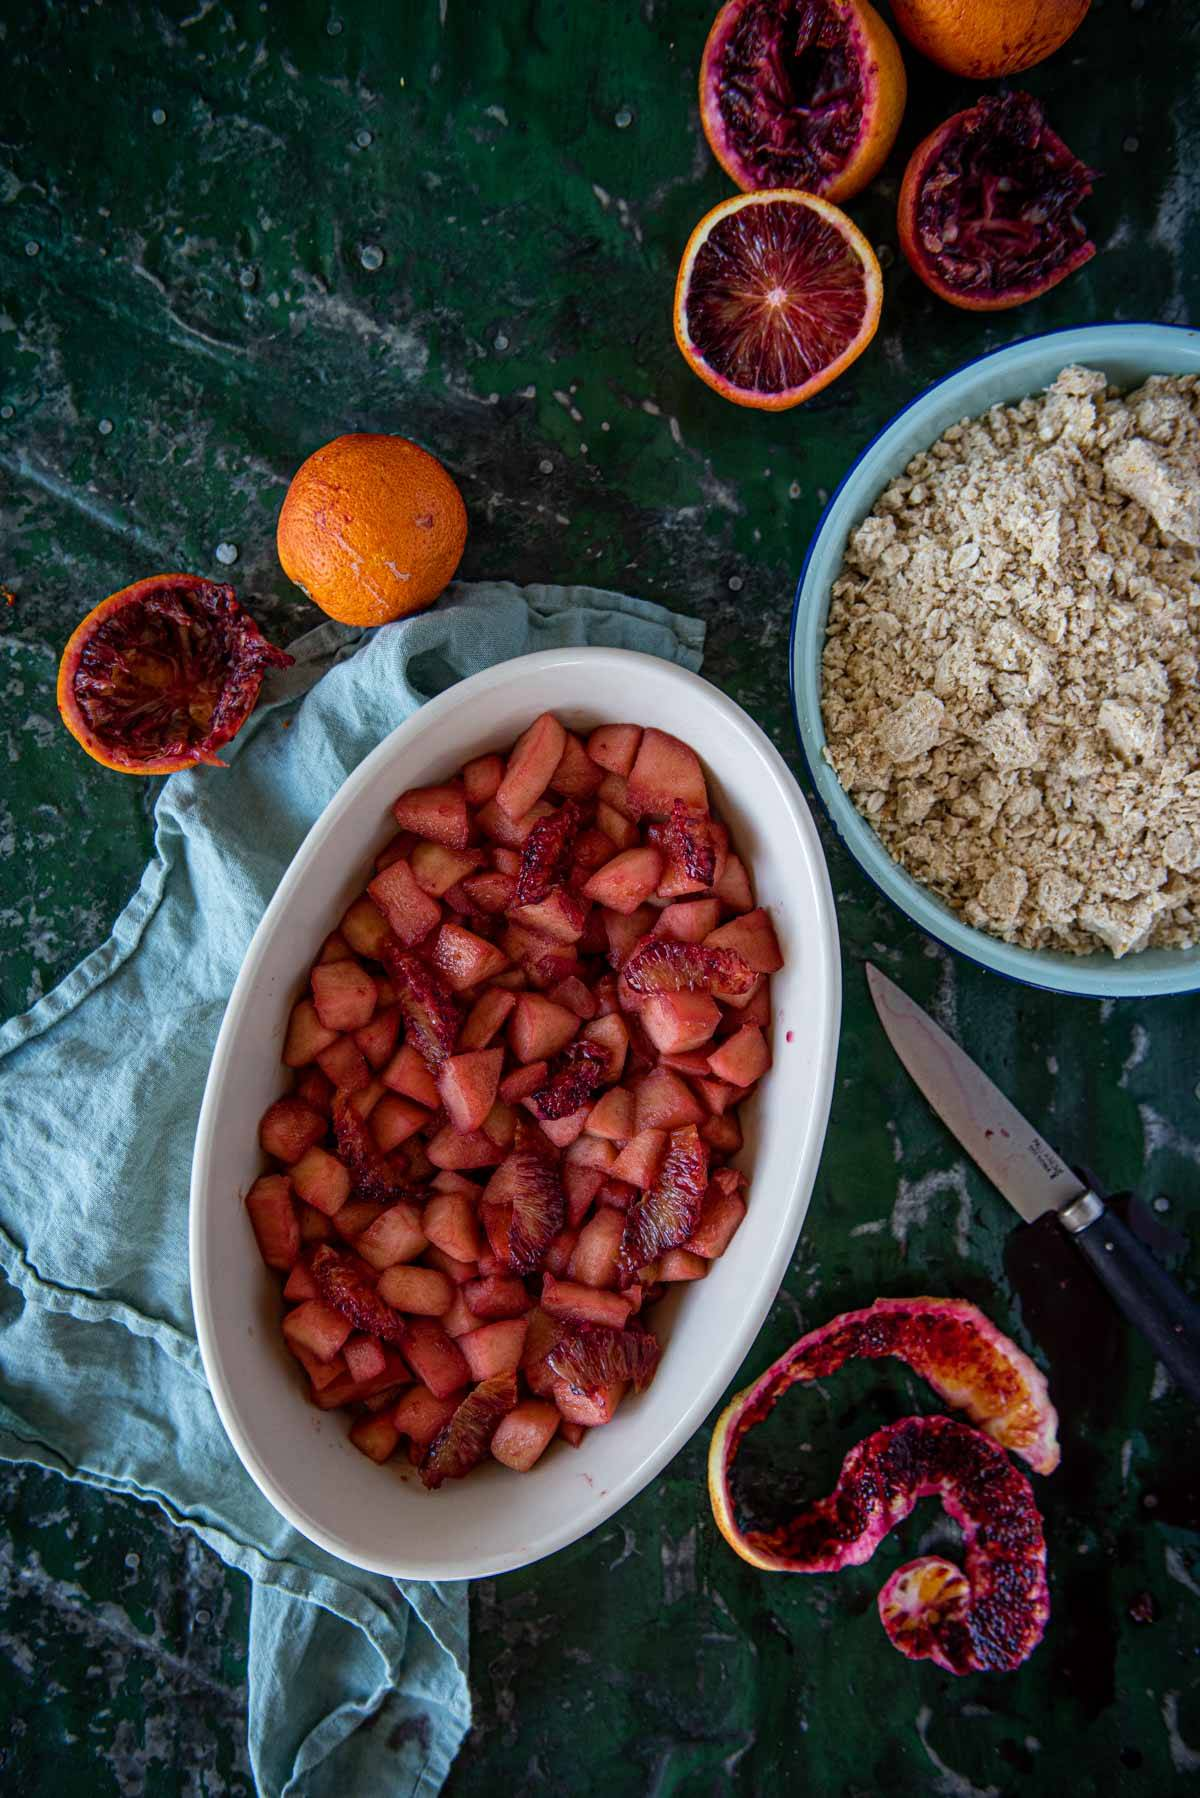 Blood Orange and Apples Crumble | Chew Town Food Blog